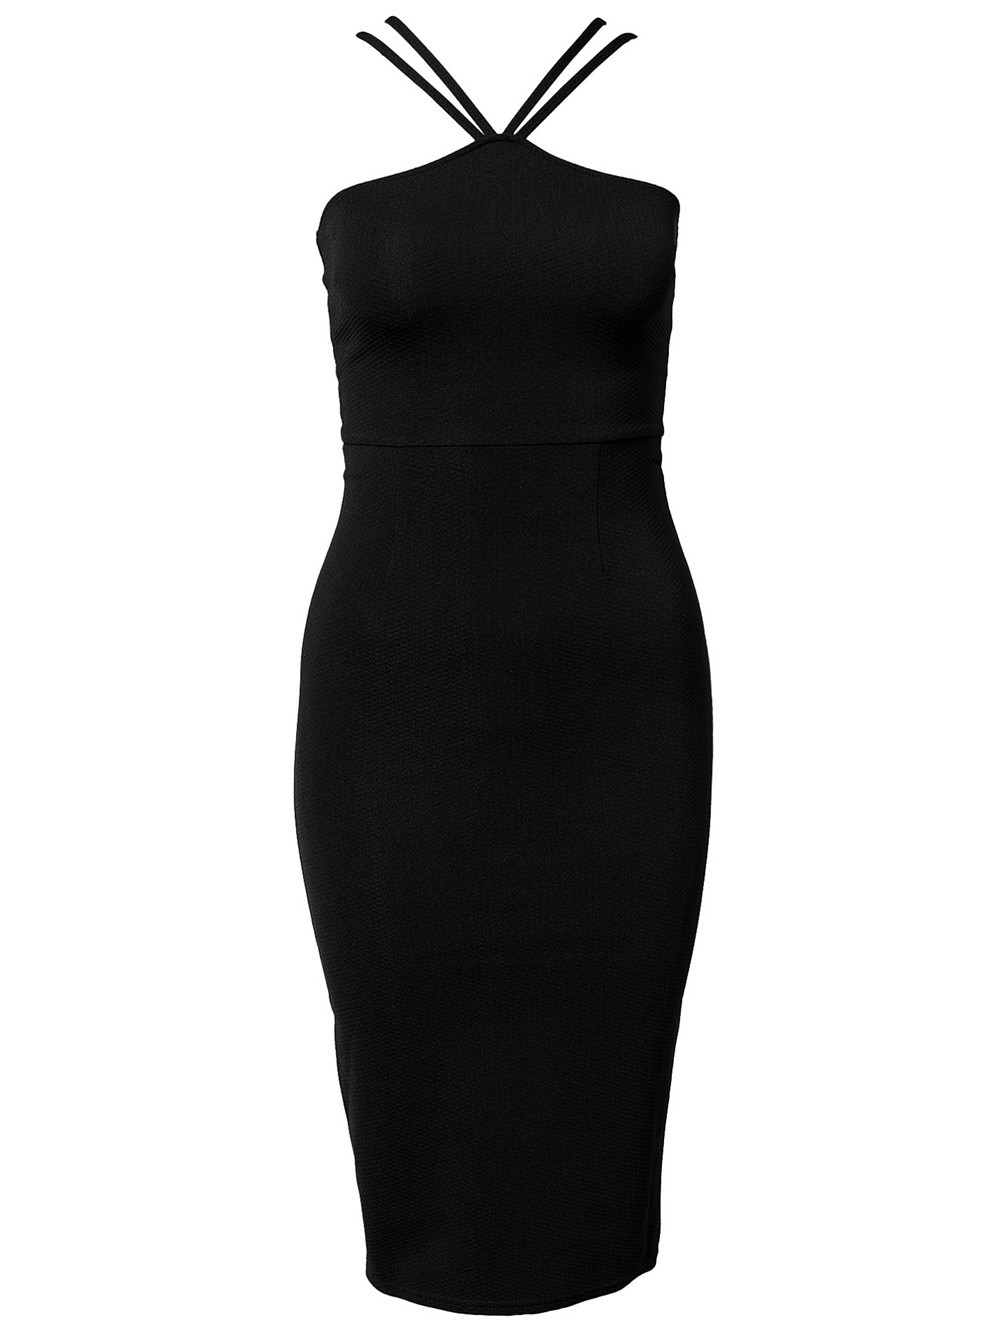 2014 New Womens Celeb Ladies Bodycon Strapless Halter Slimming Summer Casual Party Long Midi Pencil Dress 9116 | Amazing Shoes UK